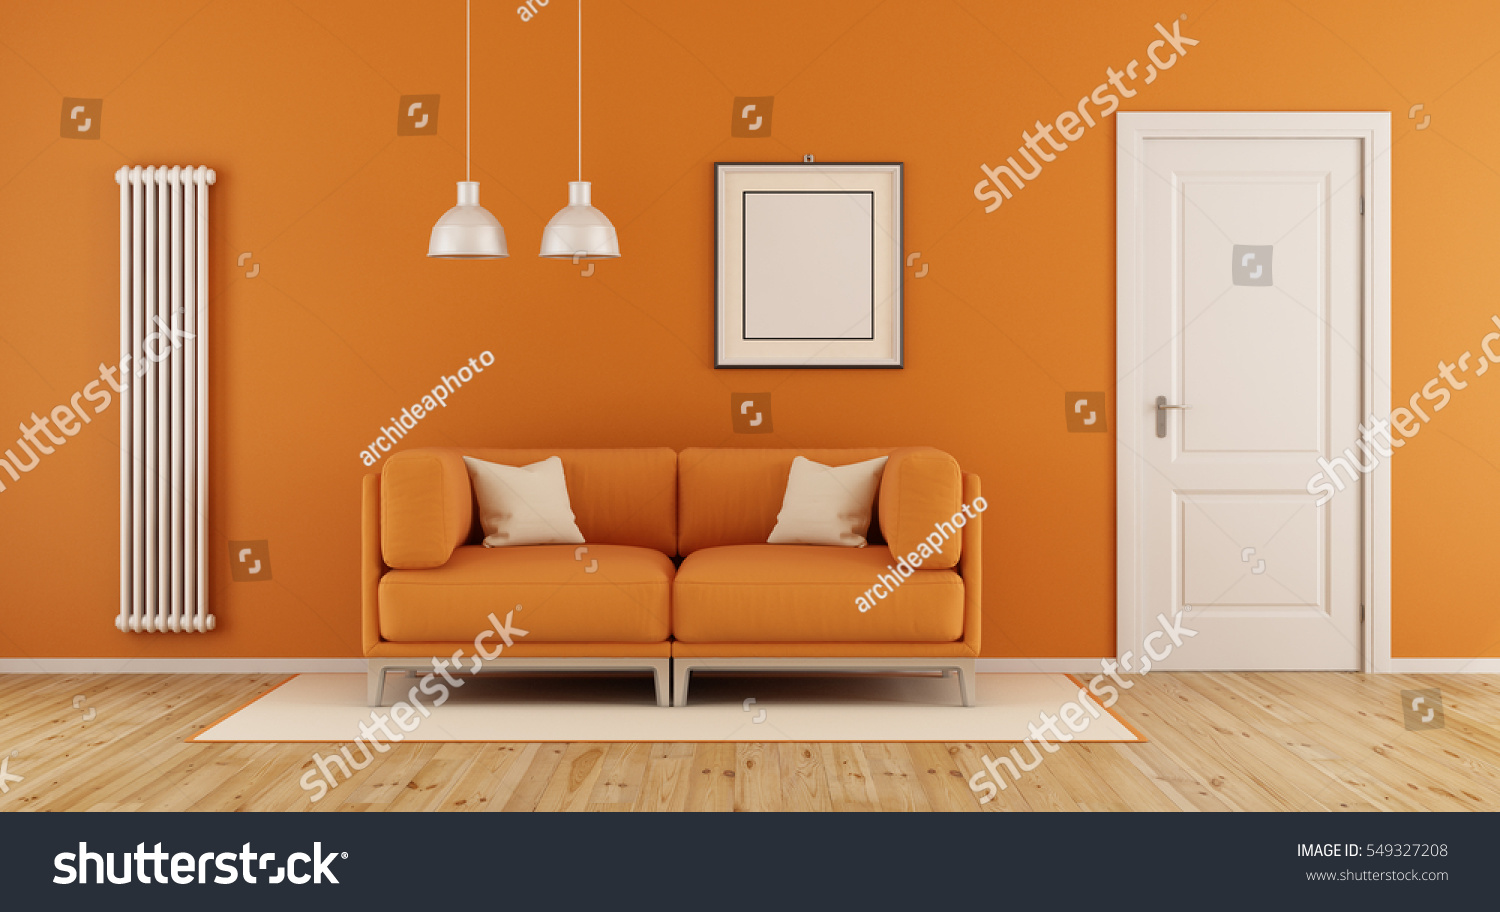 Orange And Yellow Living Room Orange Living Room Modern Couchclosed Door Stock Illustration